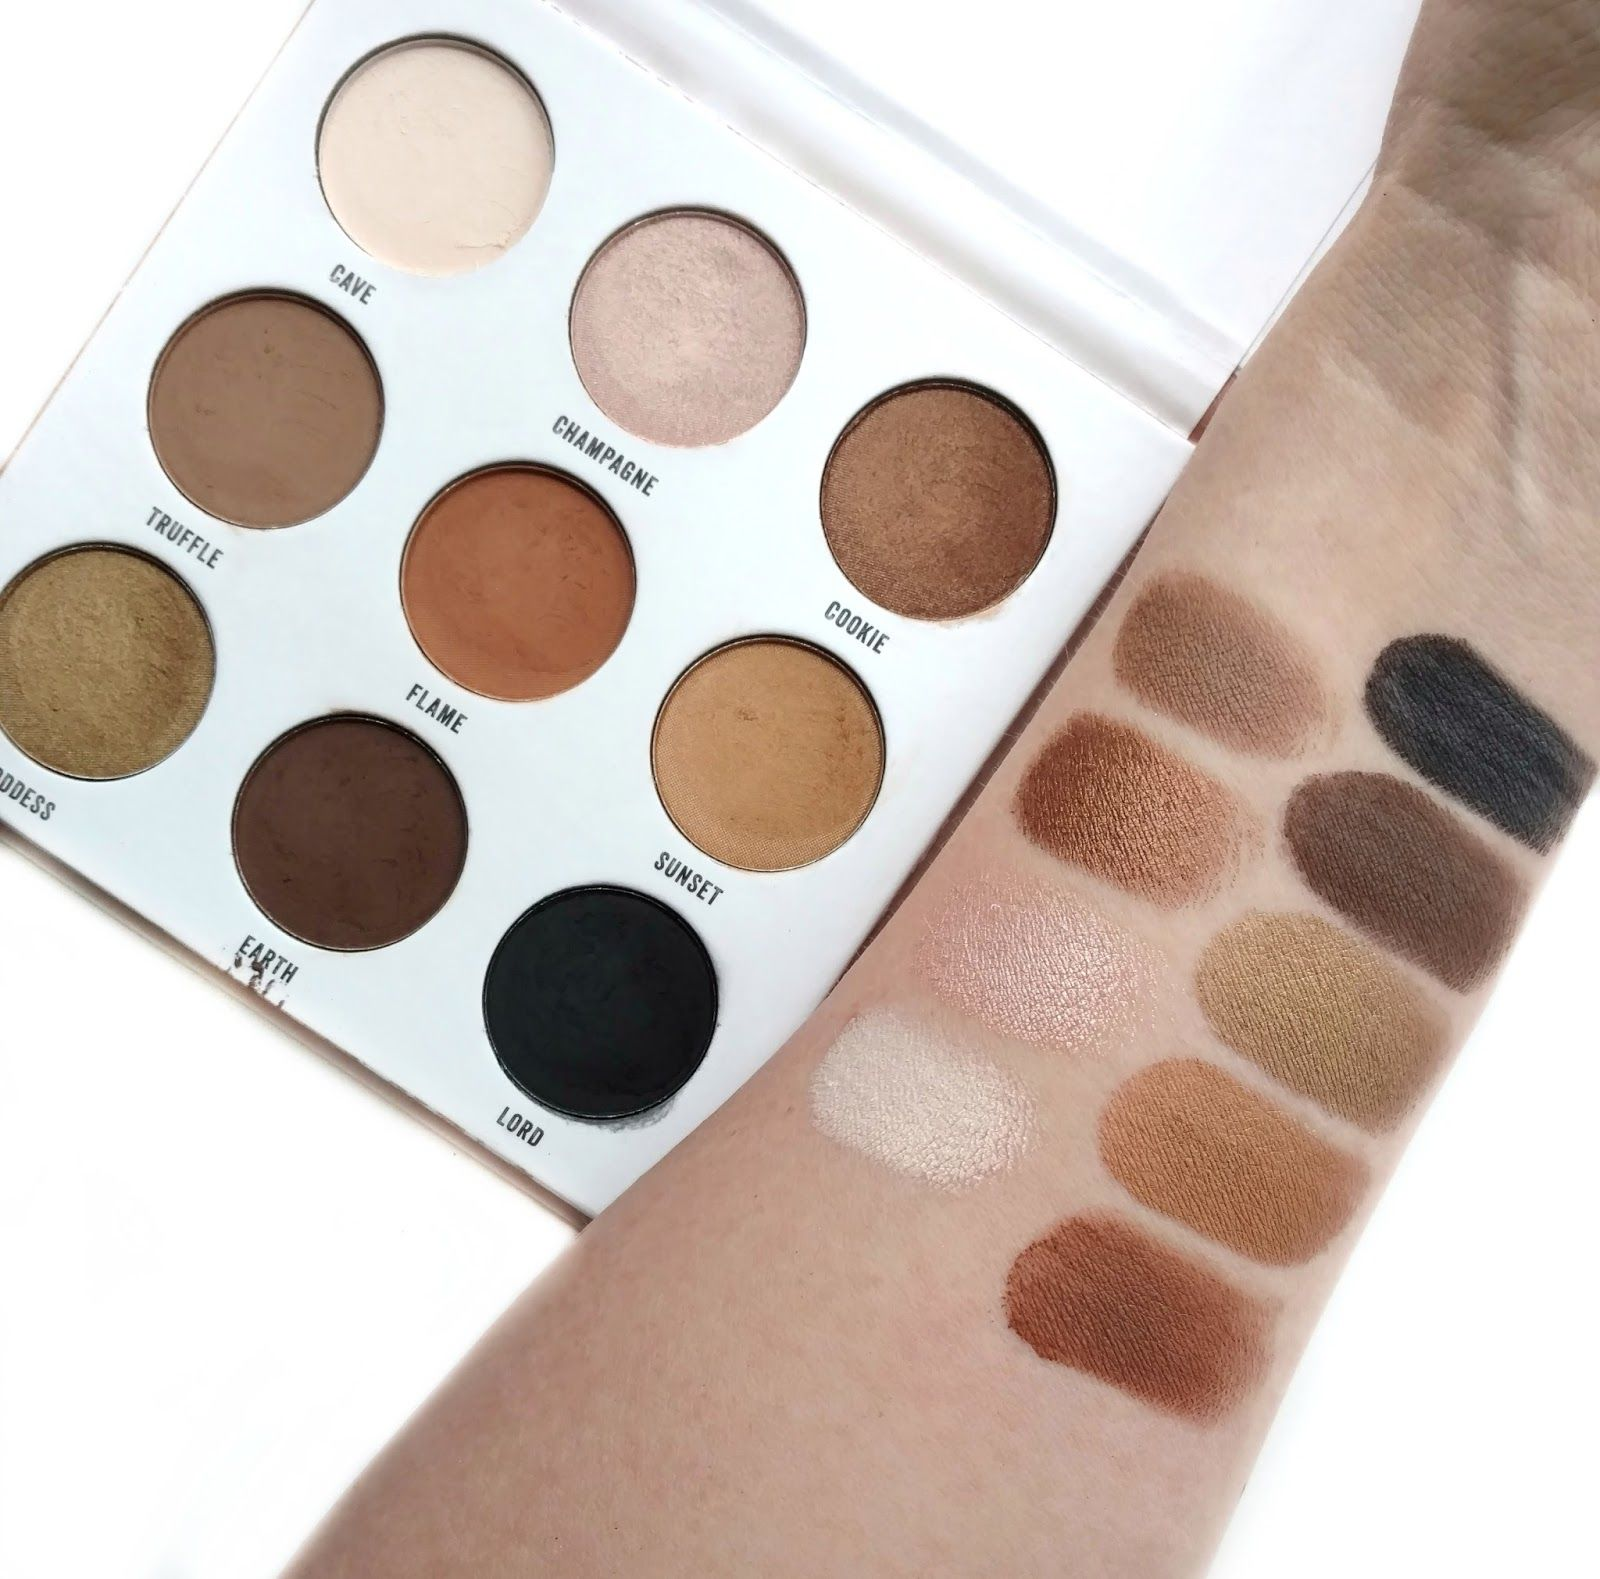 Academy of Colour Eyeshadow Palette Swatches from Kohls Sfx Makeup, Makeup Swatches, Drugstore Makeup